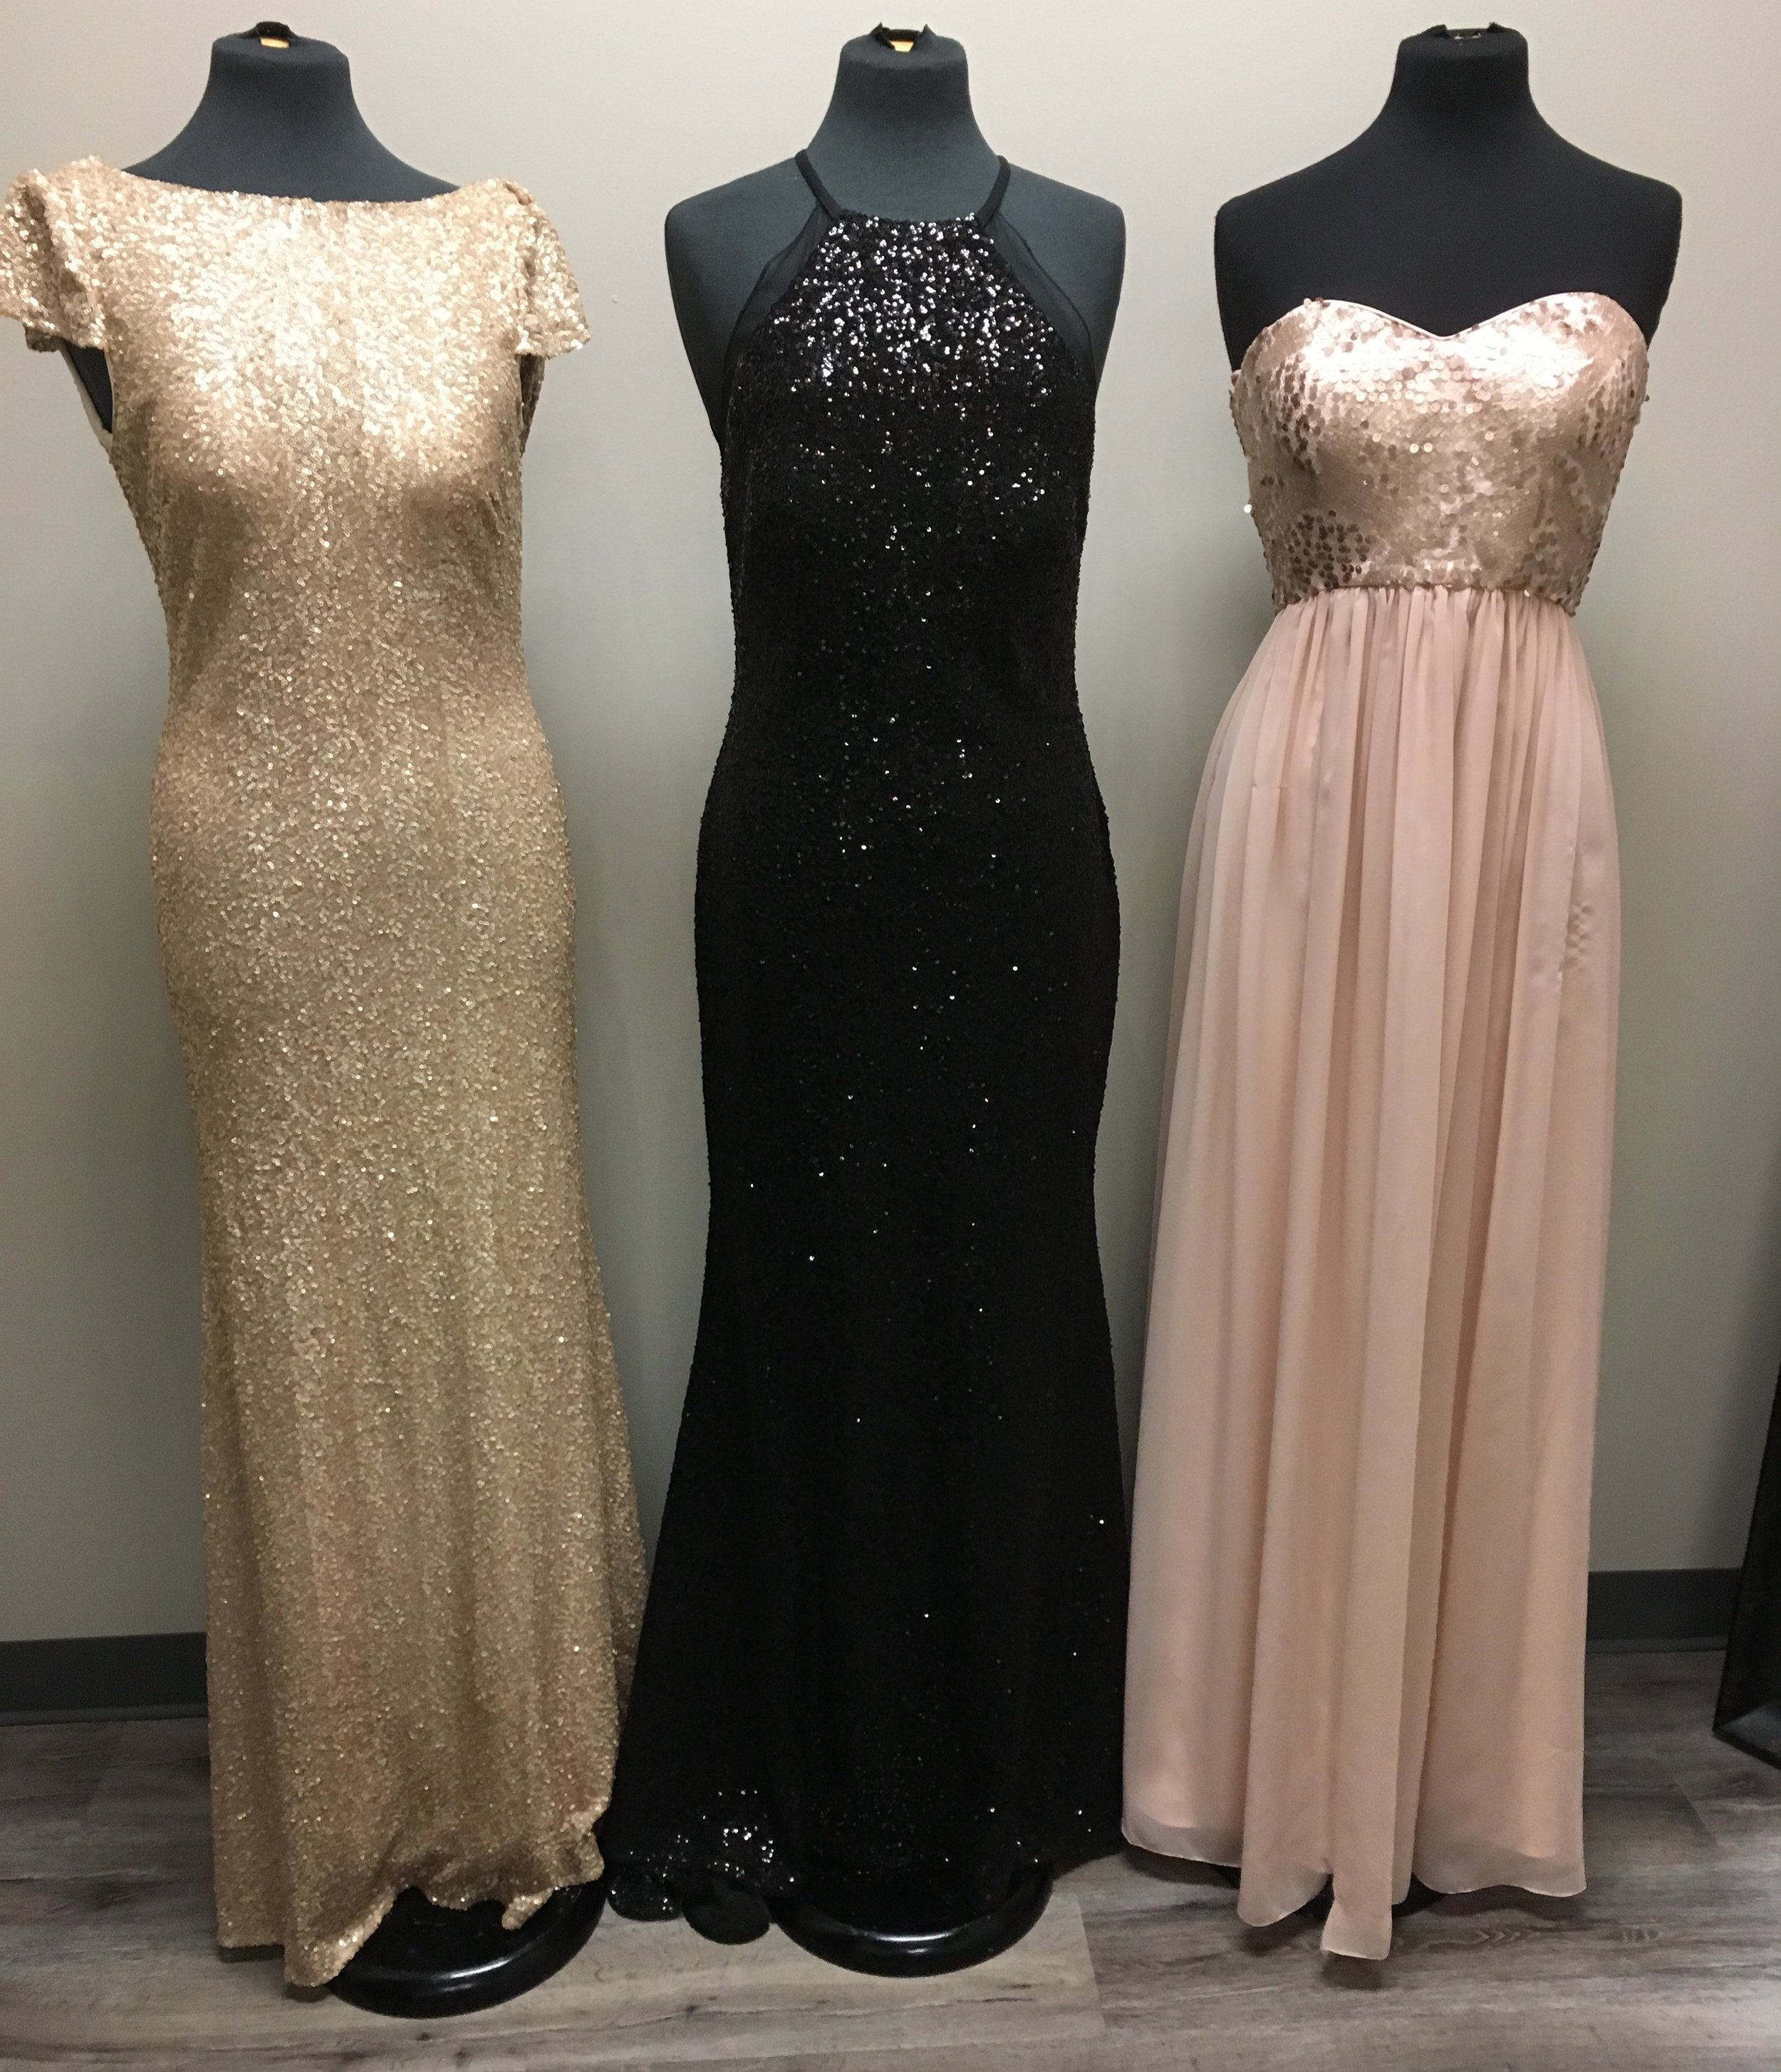 We offer lots of colours in these three squin dresses at OUTW!